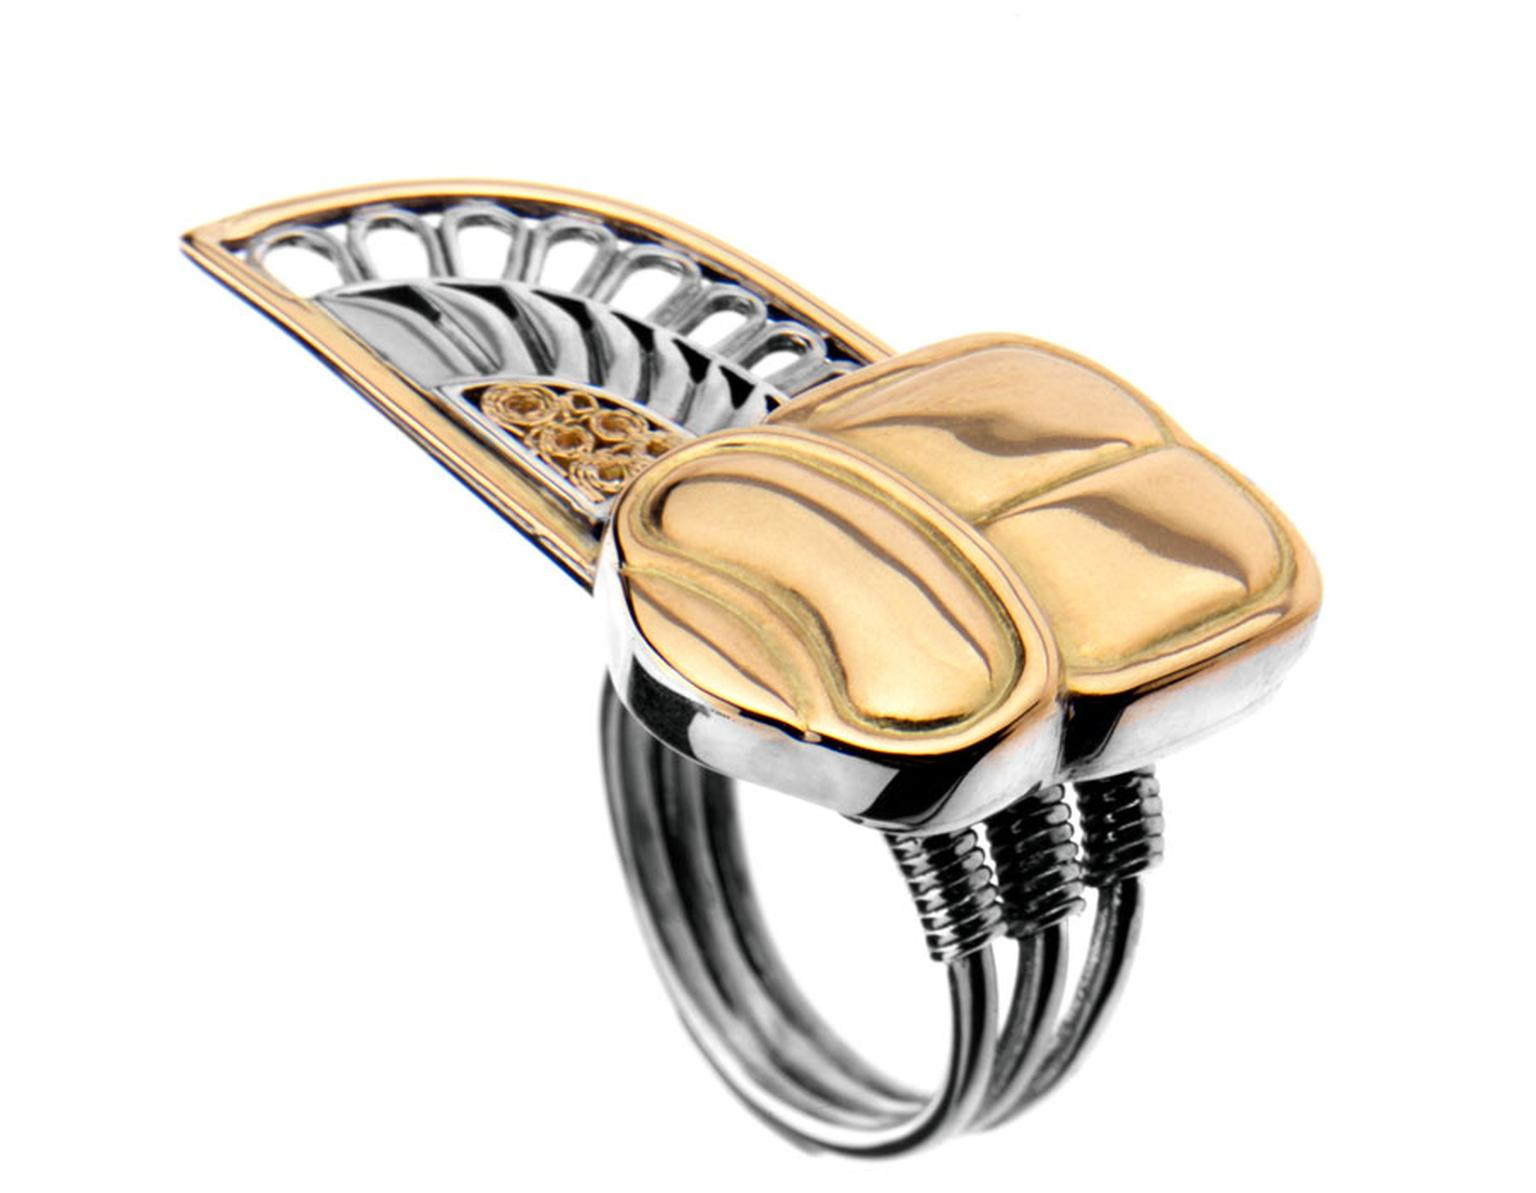 Azza-Fahmy-Winged-Scarab-Ring13-003.jpg